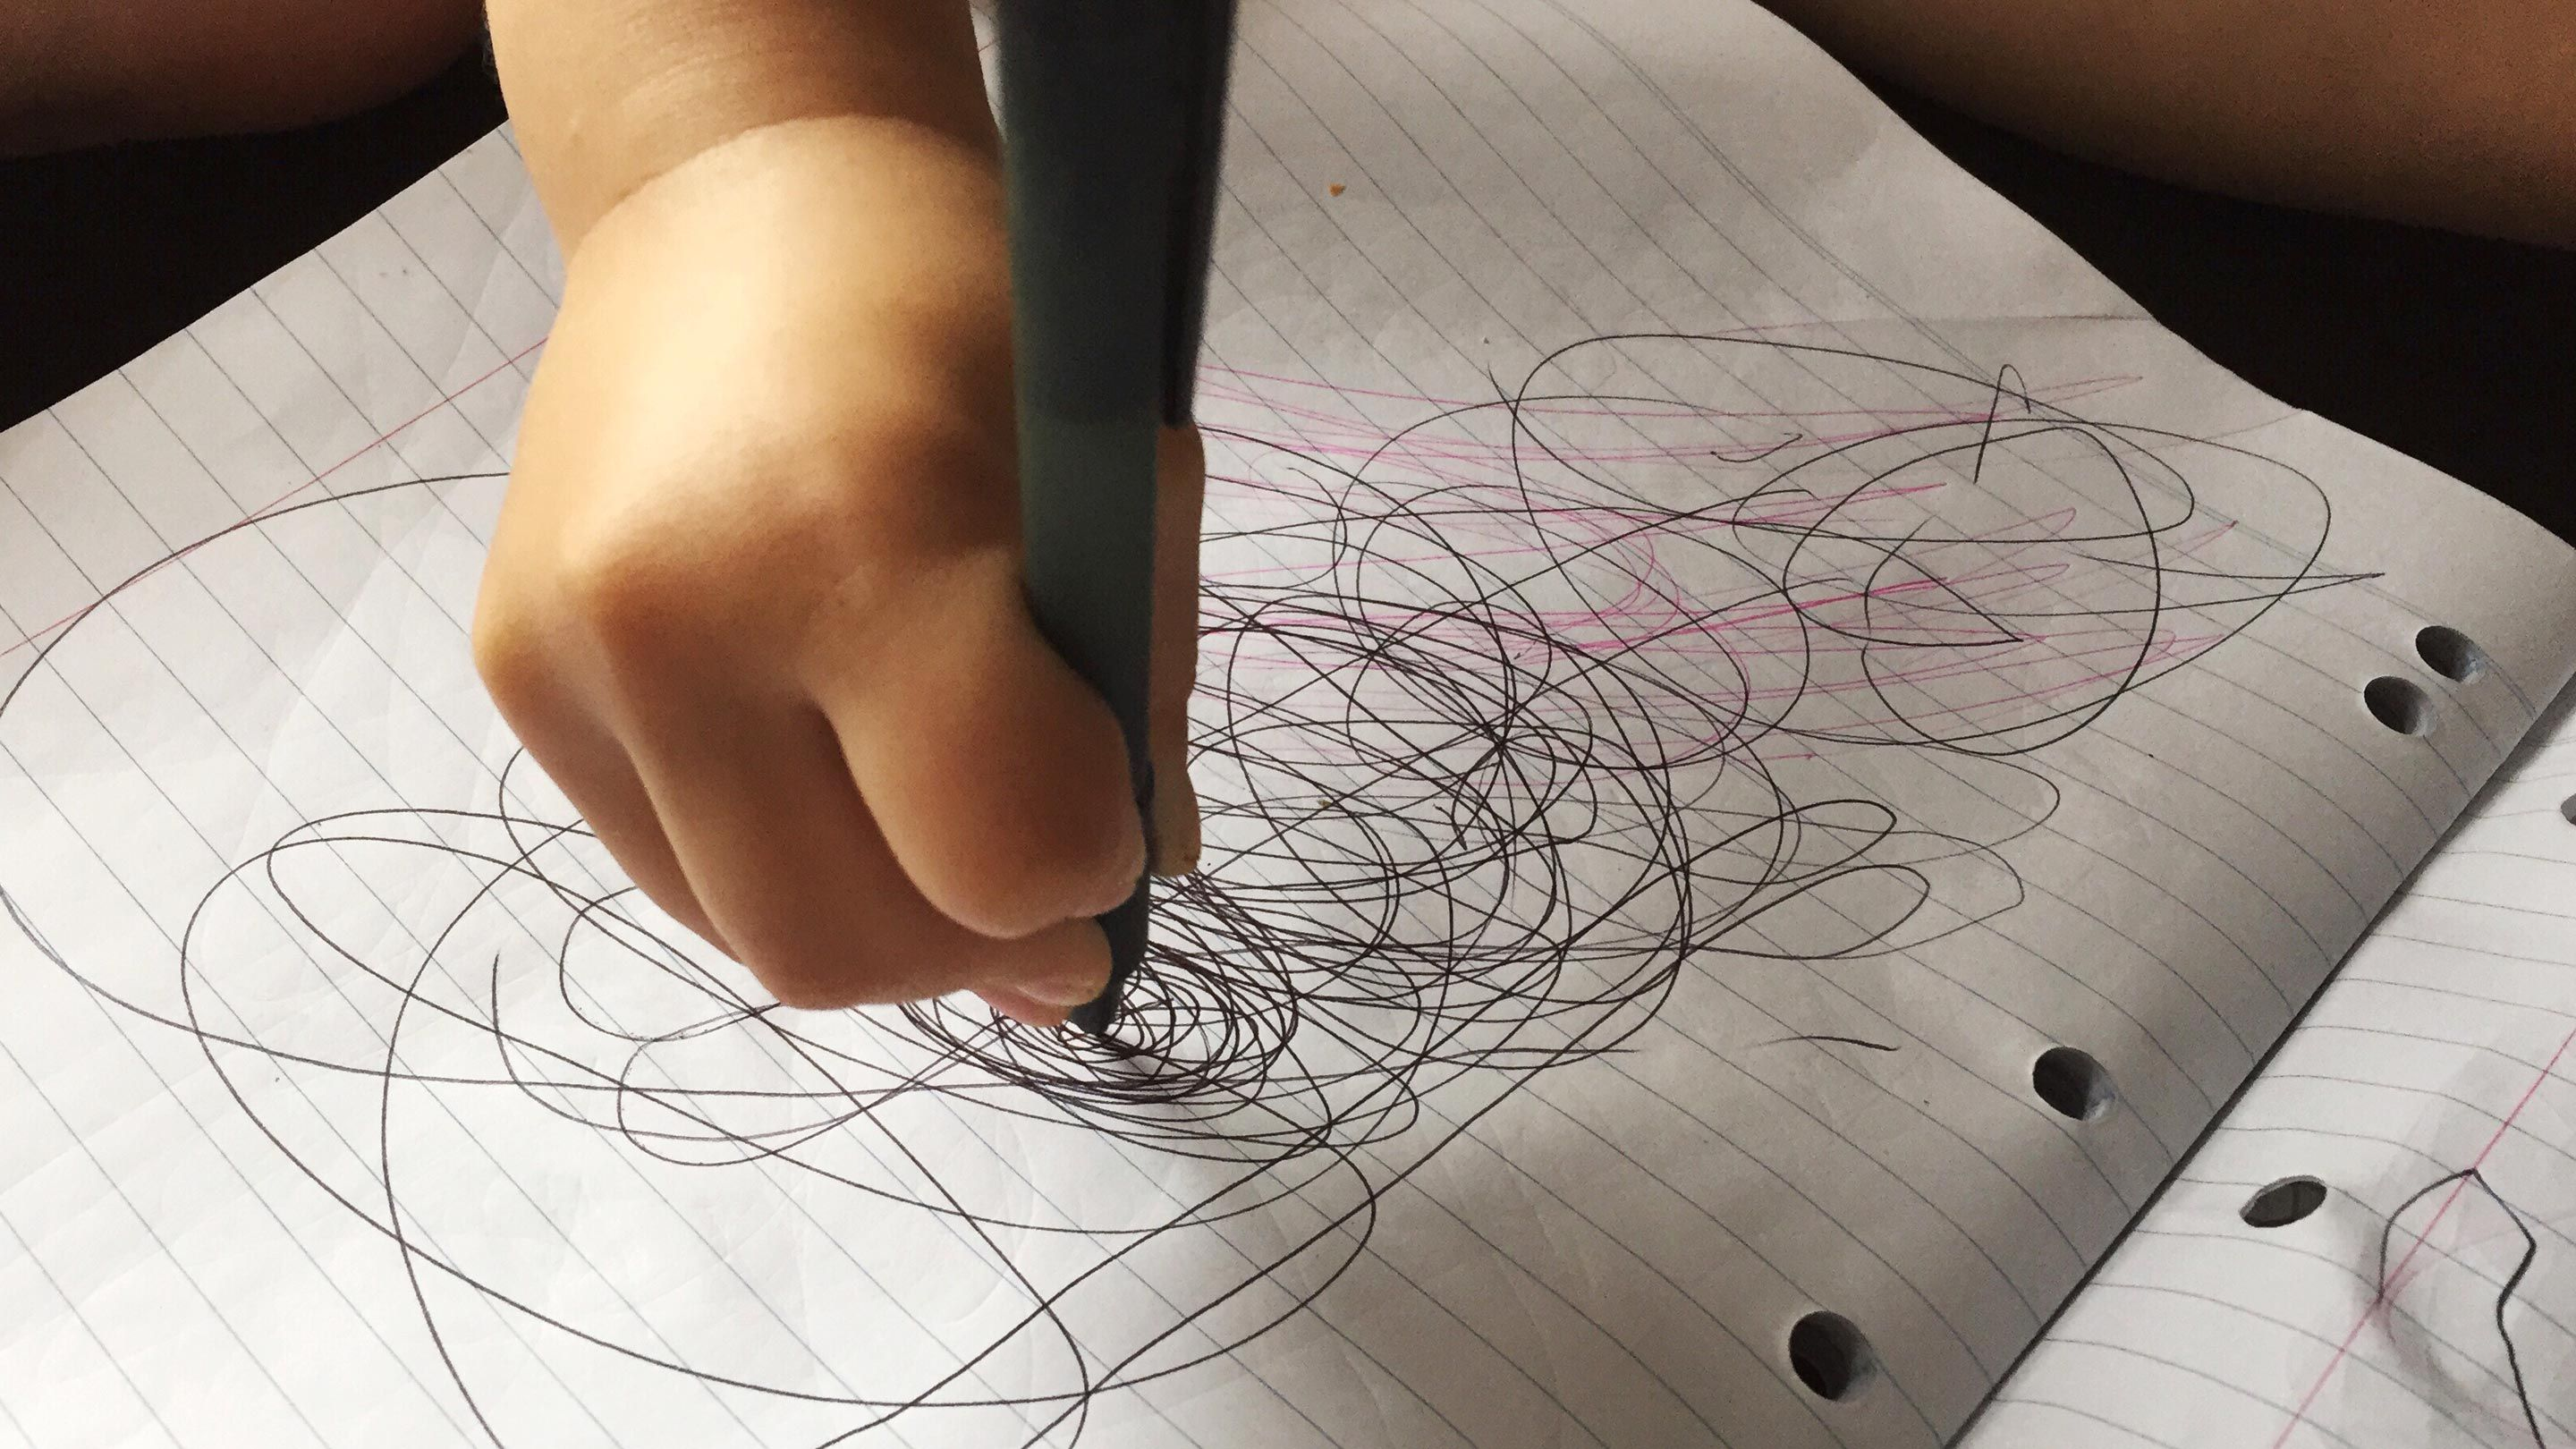 A child's hand scribbling in pen in a lined notebook